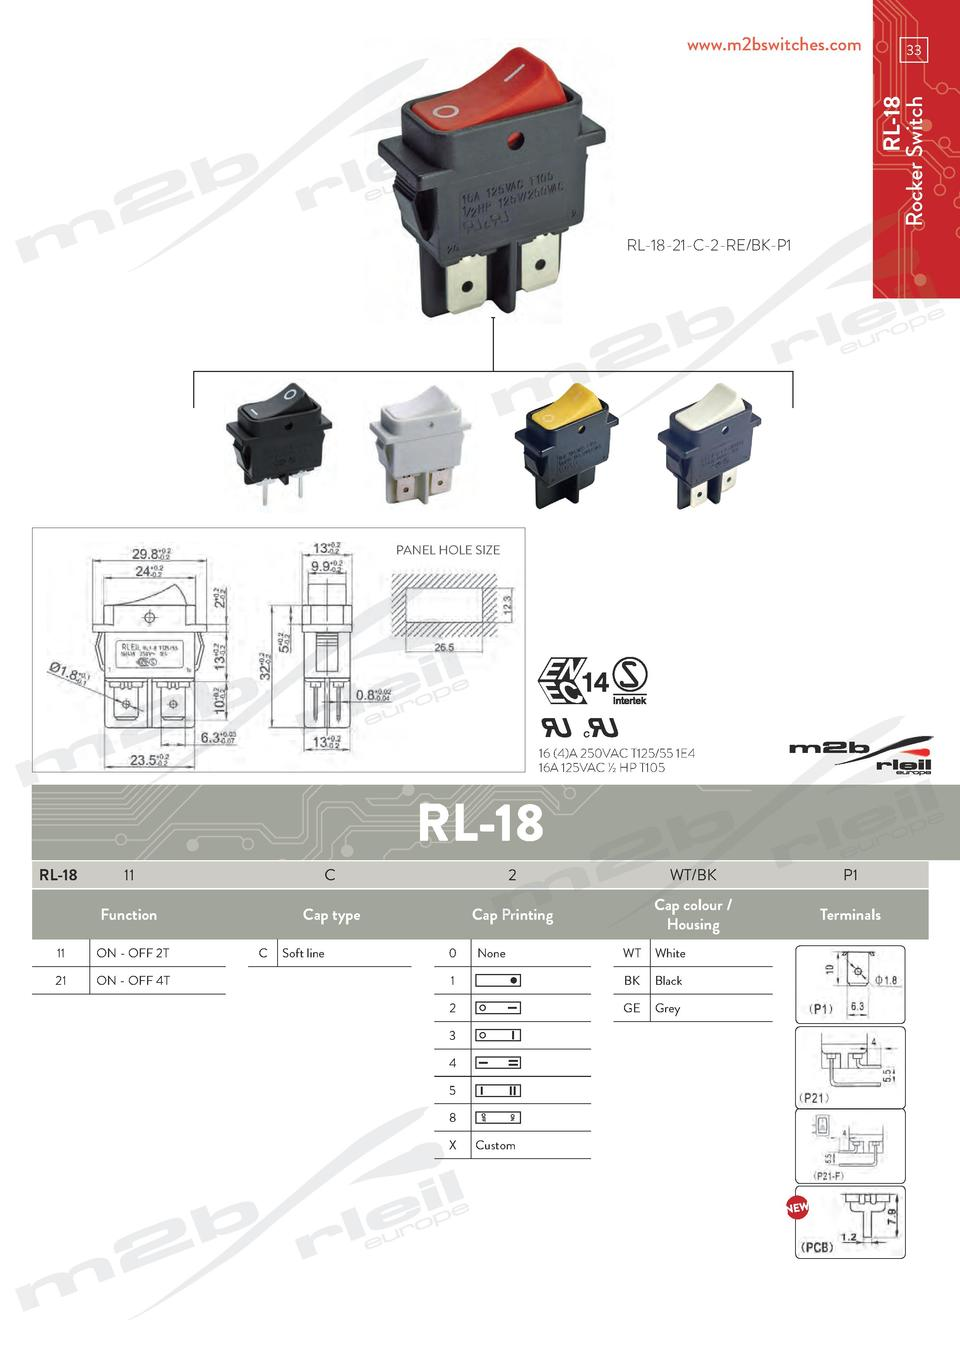 hight resolution of www m2bswitches com rl 18 rocker switch 33 rl 18 21